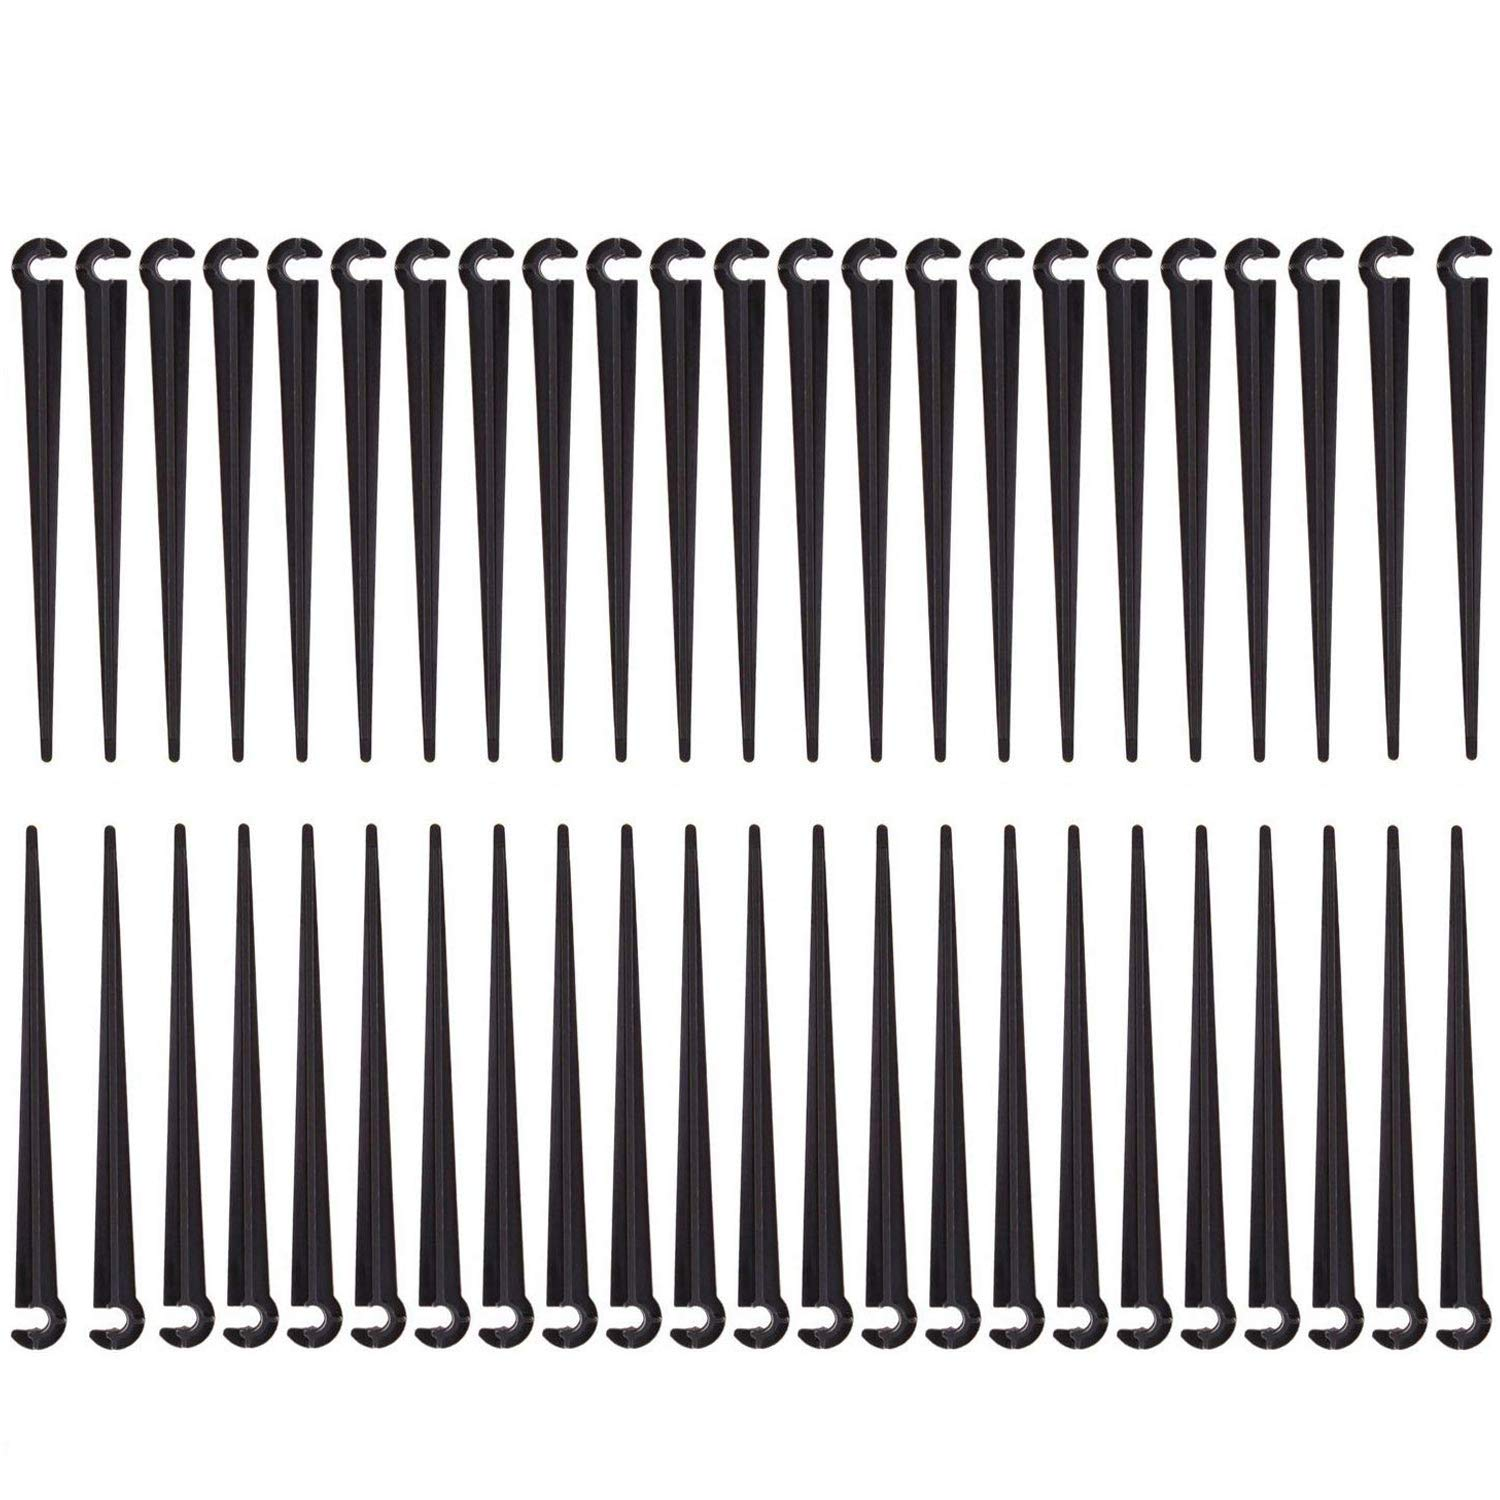 Orgrimmar 250PCS Irrigation Drip Support Stakes 1/4-Inch Tubing Hose Flower Beds, Vegetable Gardens, Herbs Gardens